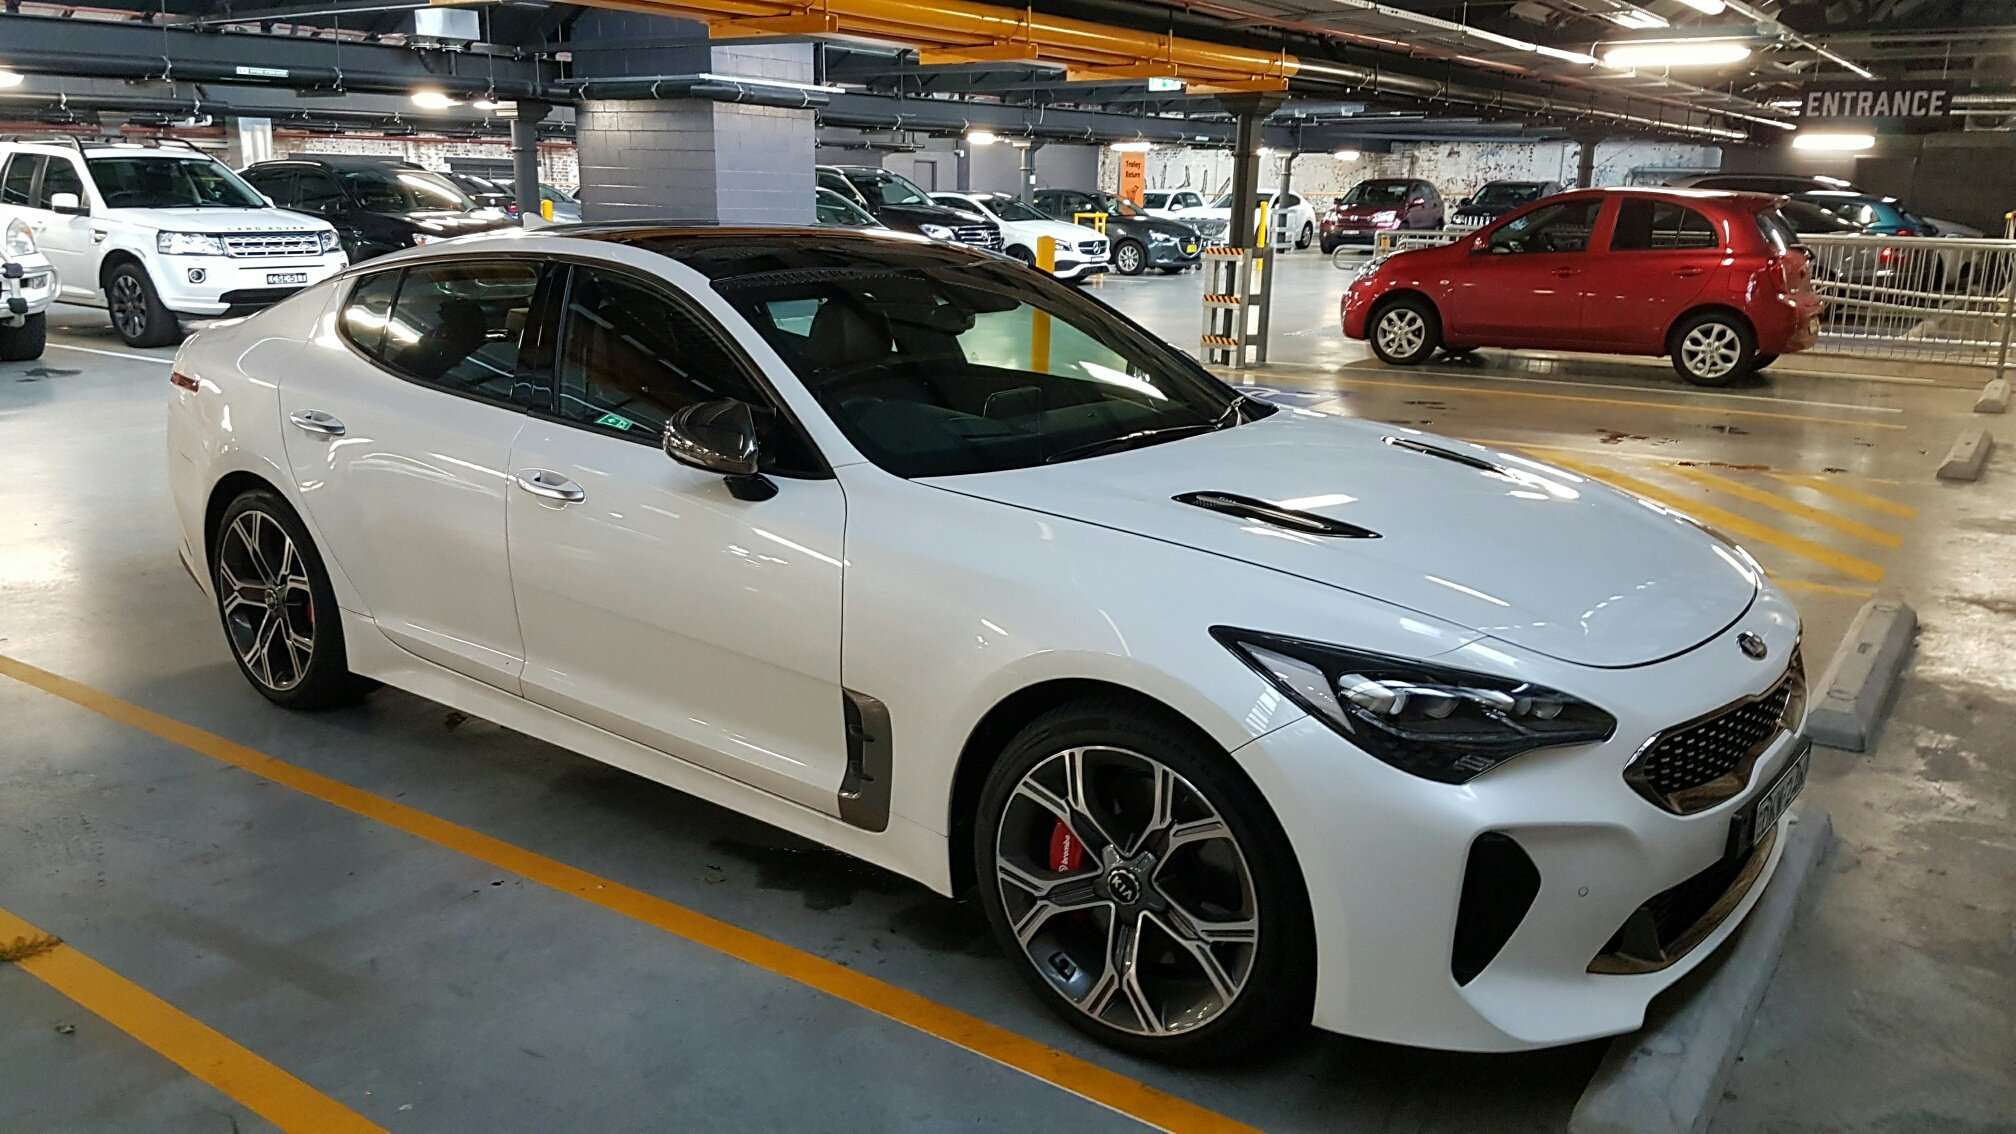 Kia Optima 2017 White >> 2017 Kia Stinger GT spied testing in Sydney - Photos (1 of 4)